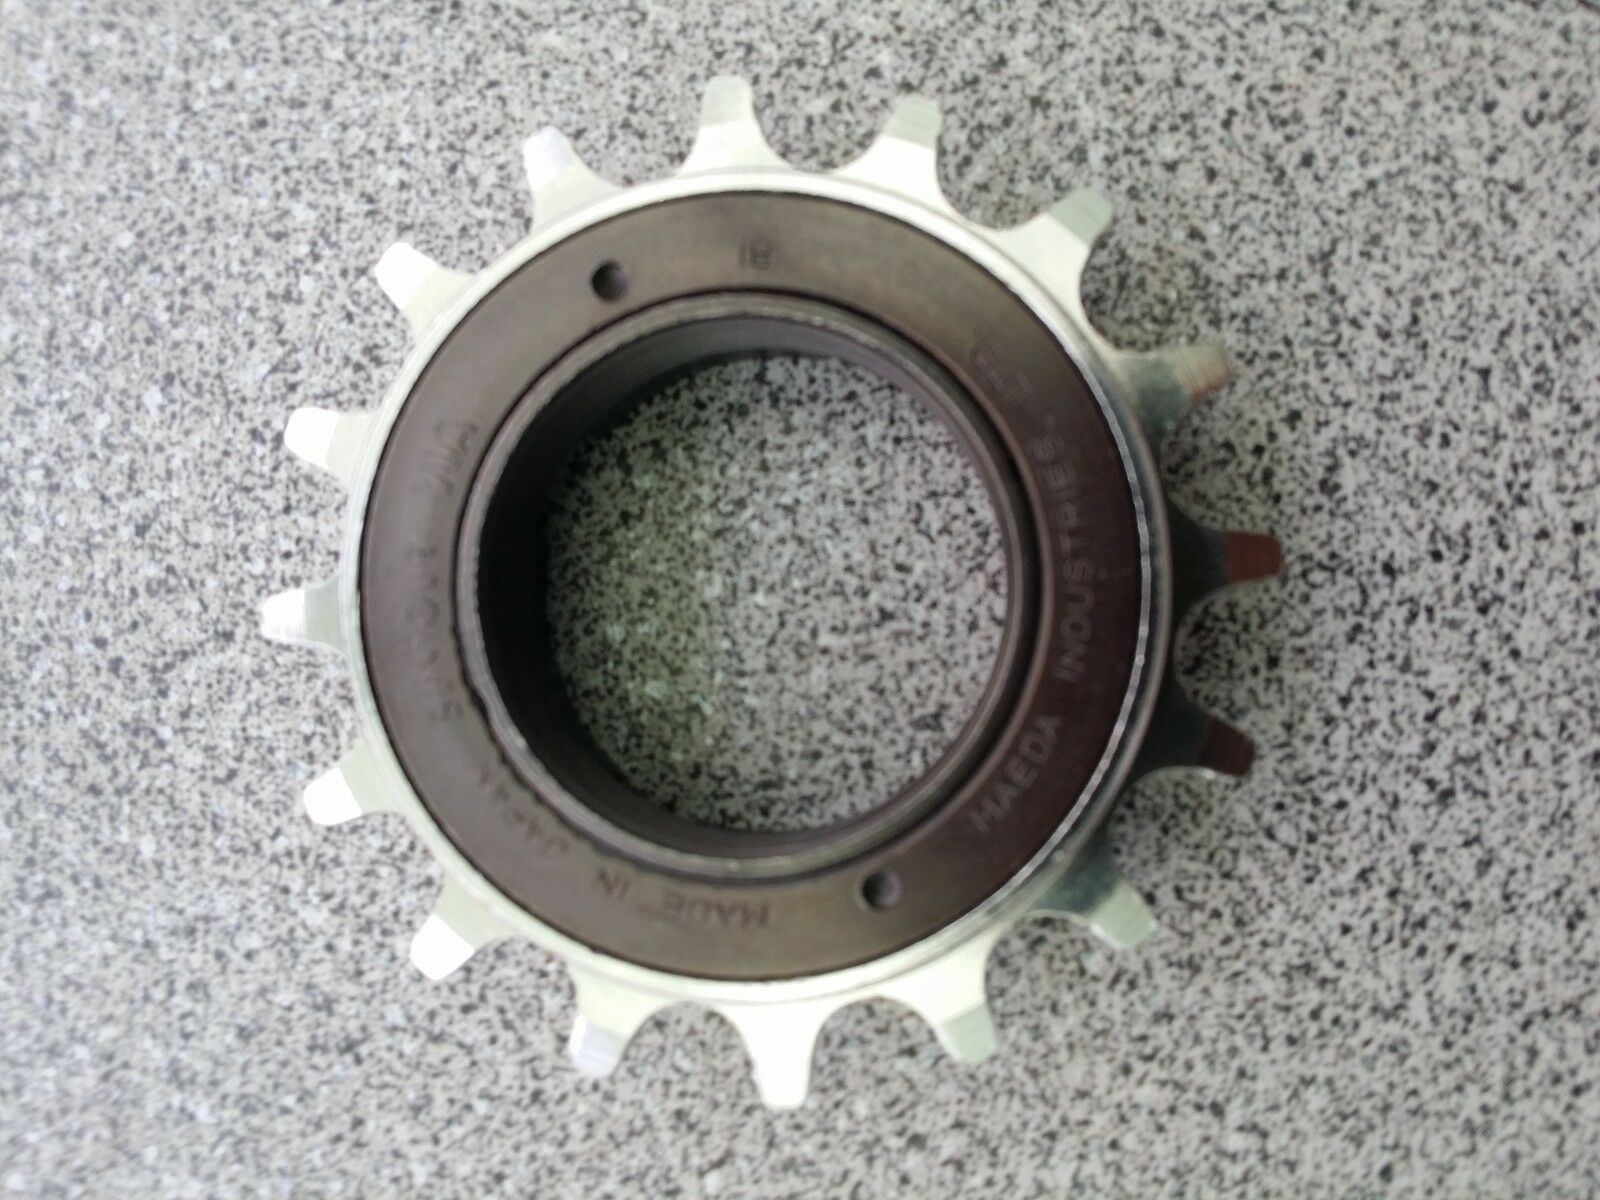 NOS 1985  Suntour MF-3000 BMX 16T (1 8) CR-Moly Freewheel Old School Freestyle  quality first consumers first